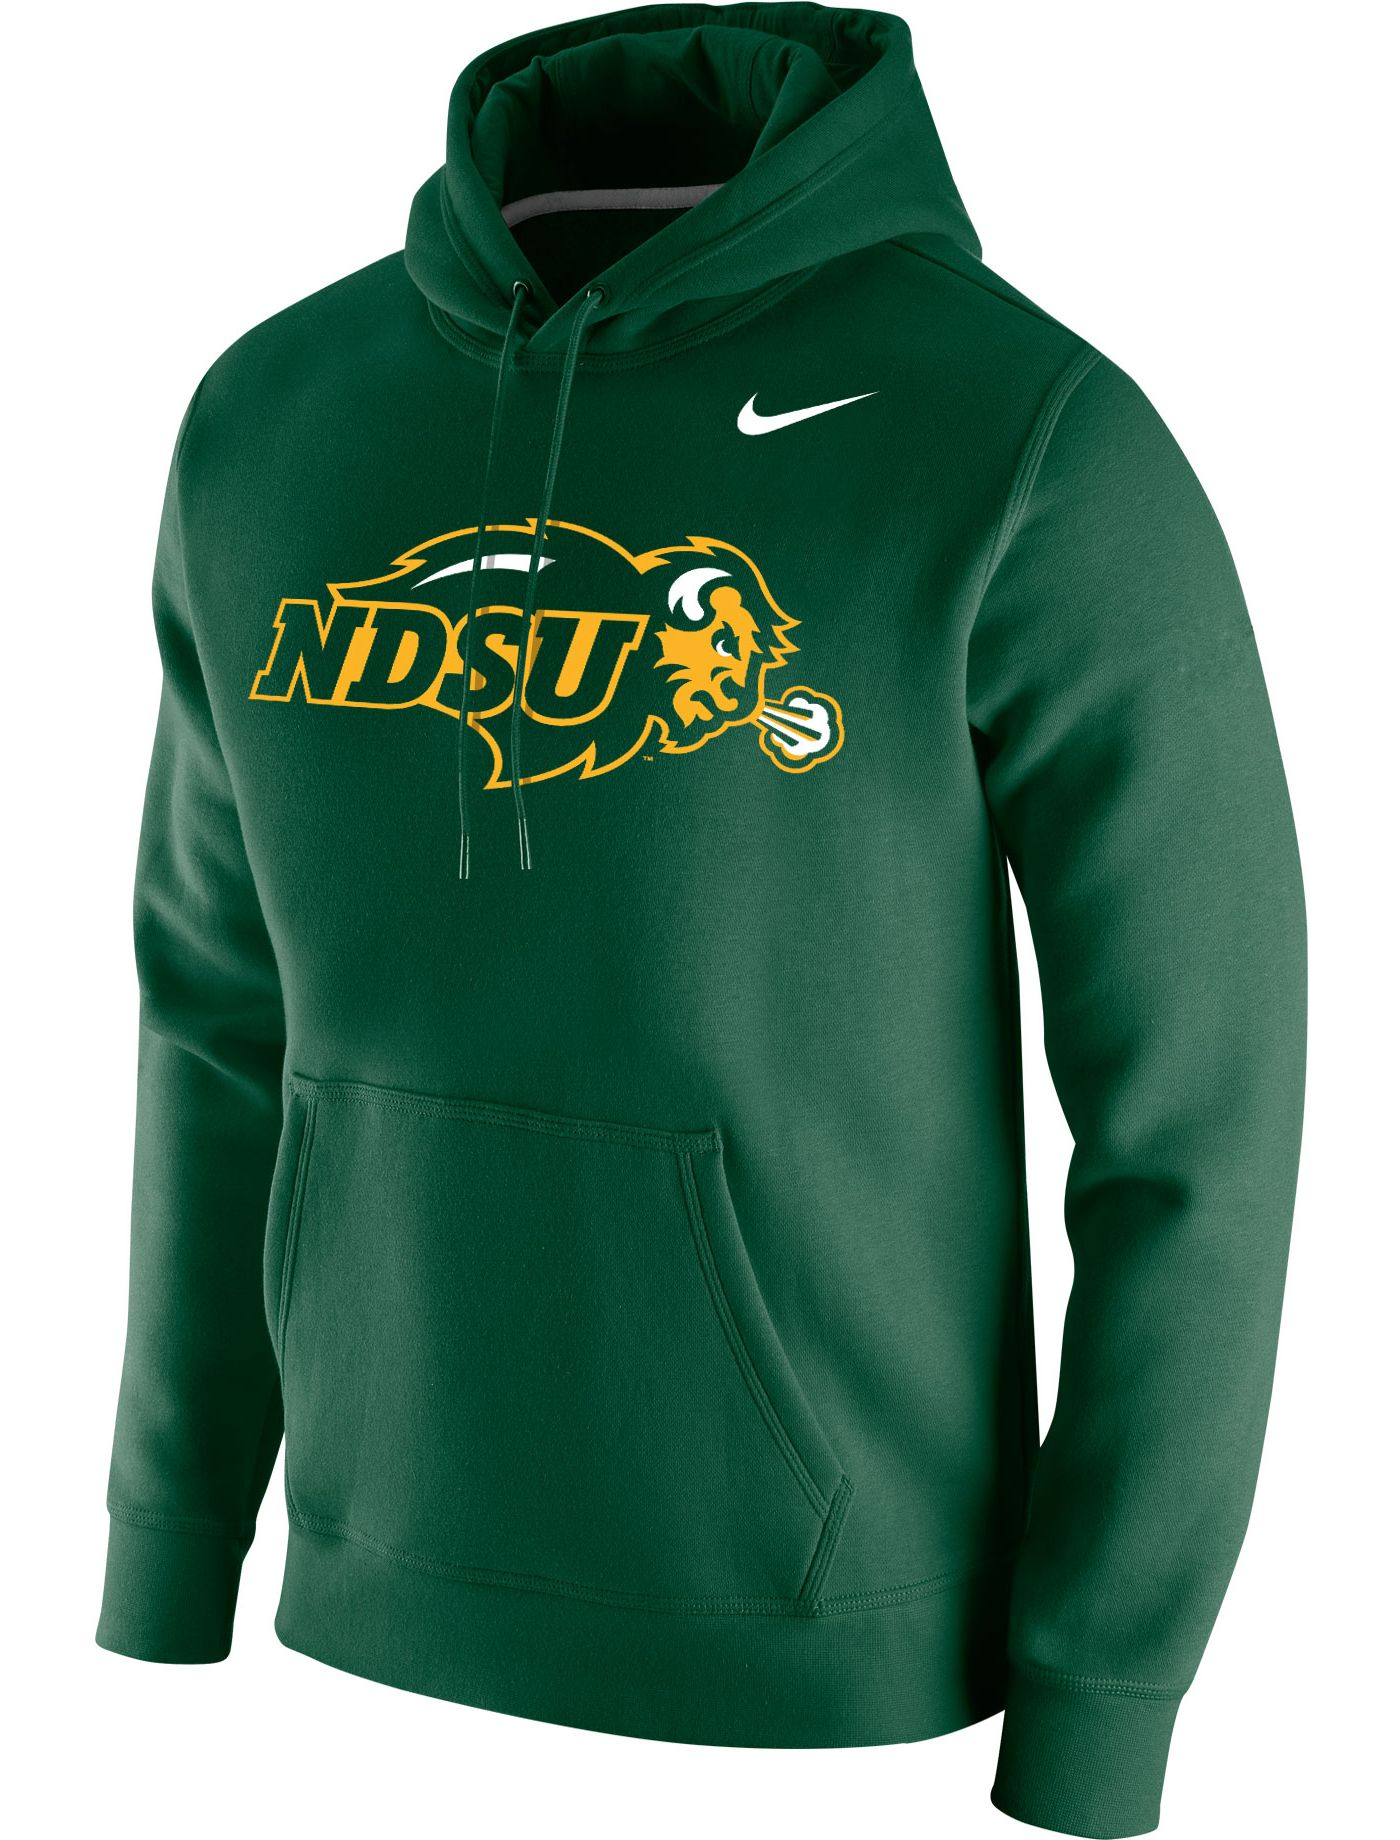 Nike Men's North Dakota State Bison Green Club Fleece Pullover Hoodie